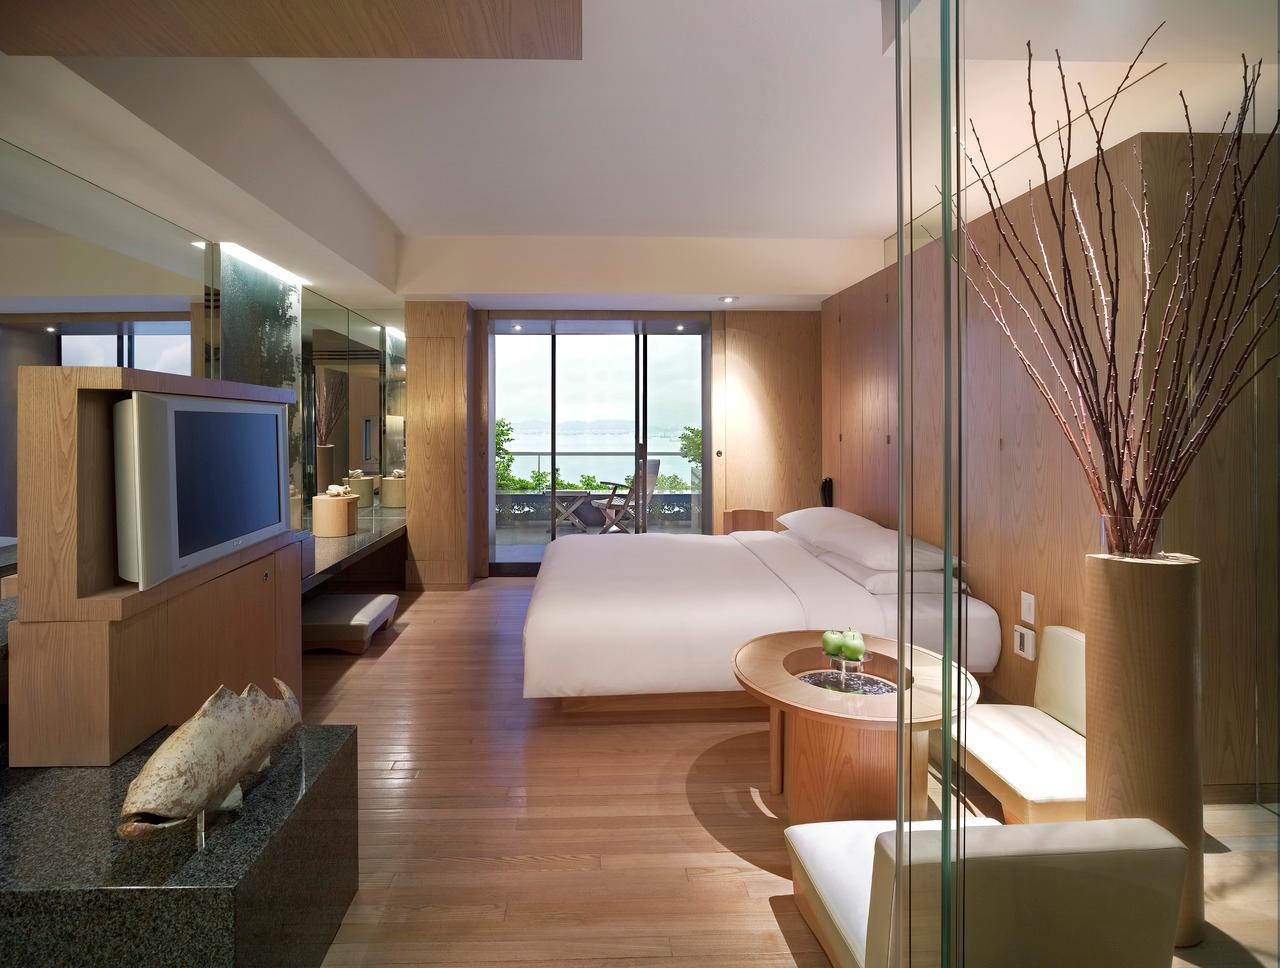 Bilik Grand Hyatt Plateau dengan Teres (Grand Hyatt Plateau Room with Terrace)